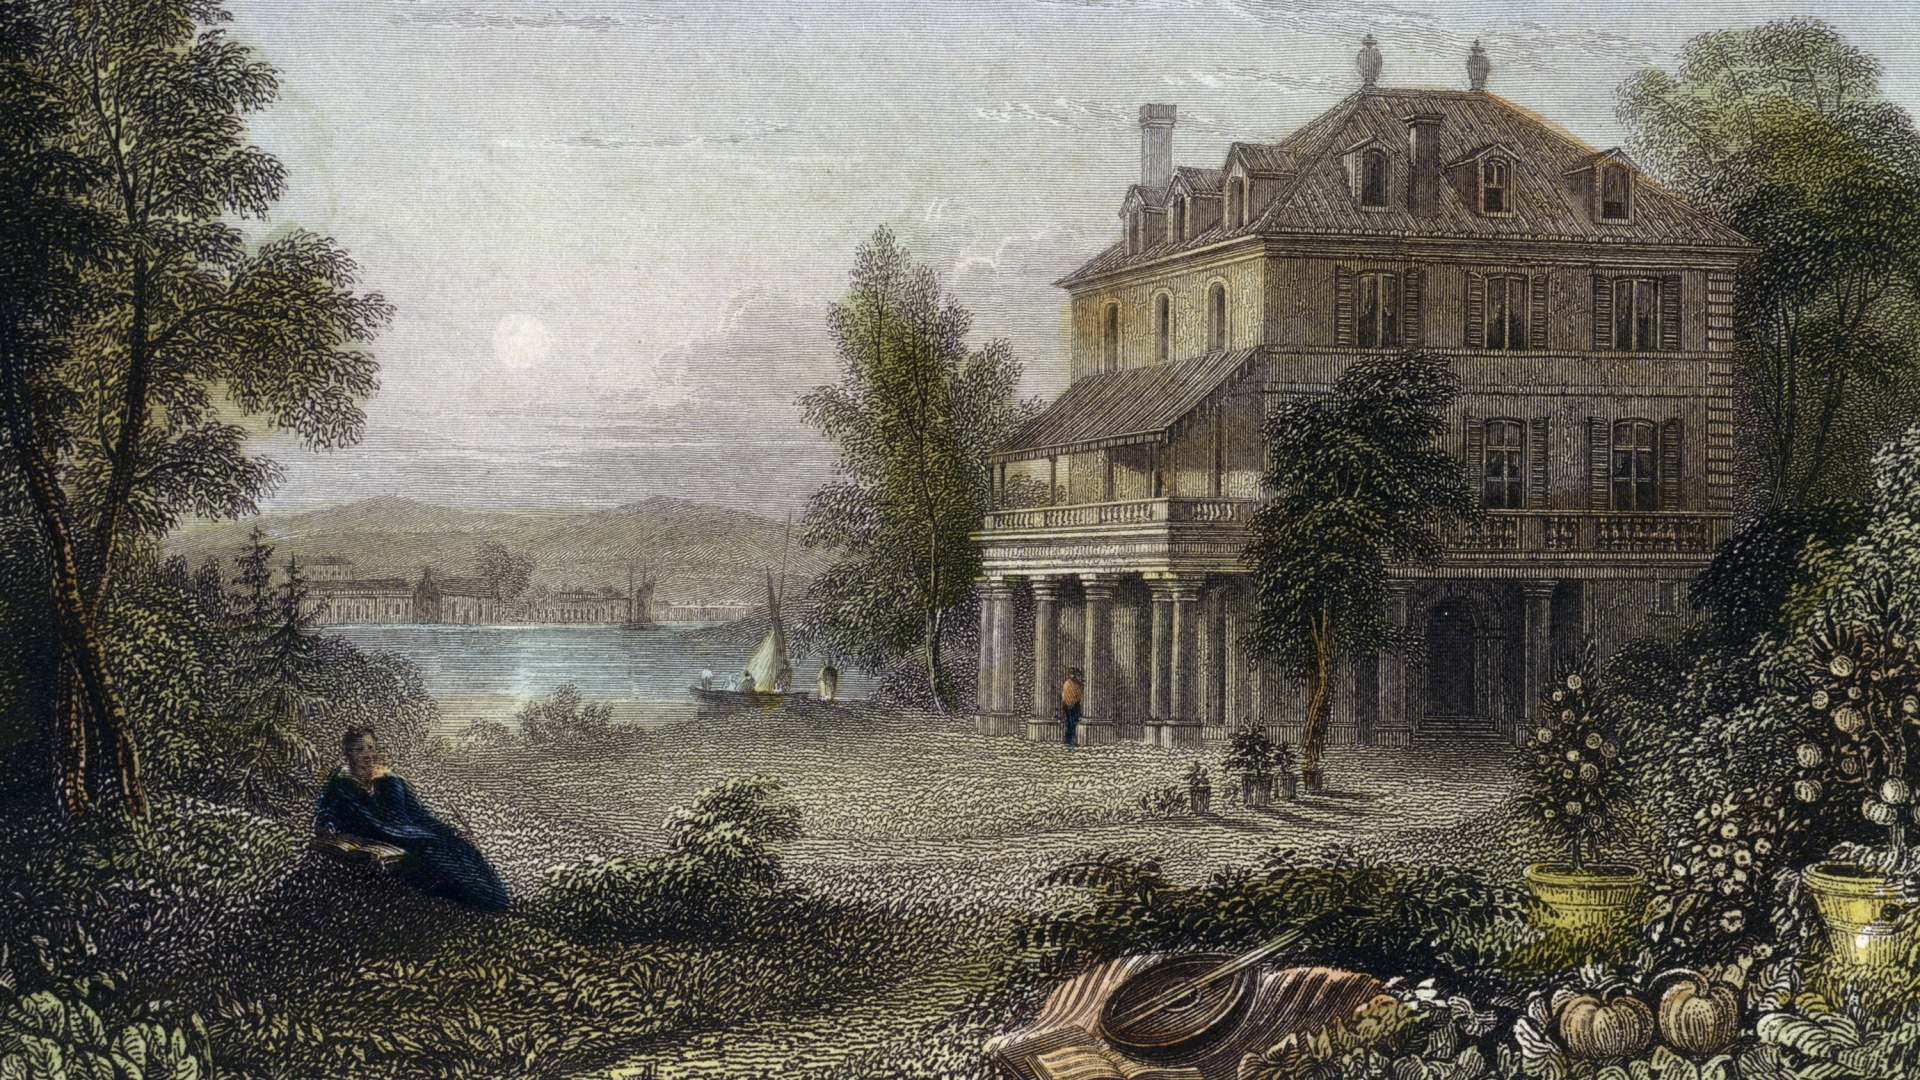 Villa Diodati, near Geneva, where literary character Frankenstein was created in 1816. (Credit: DeAgostini/Getty Images)